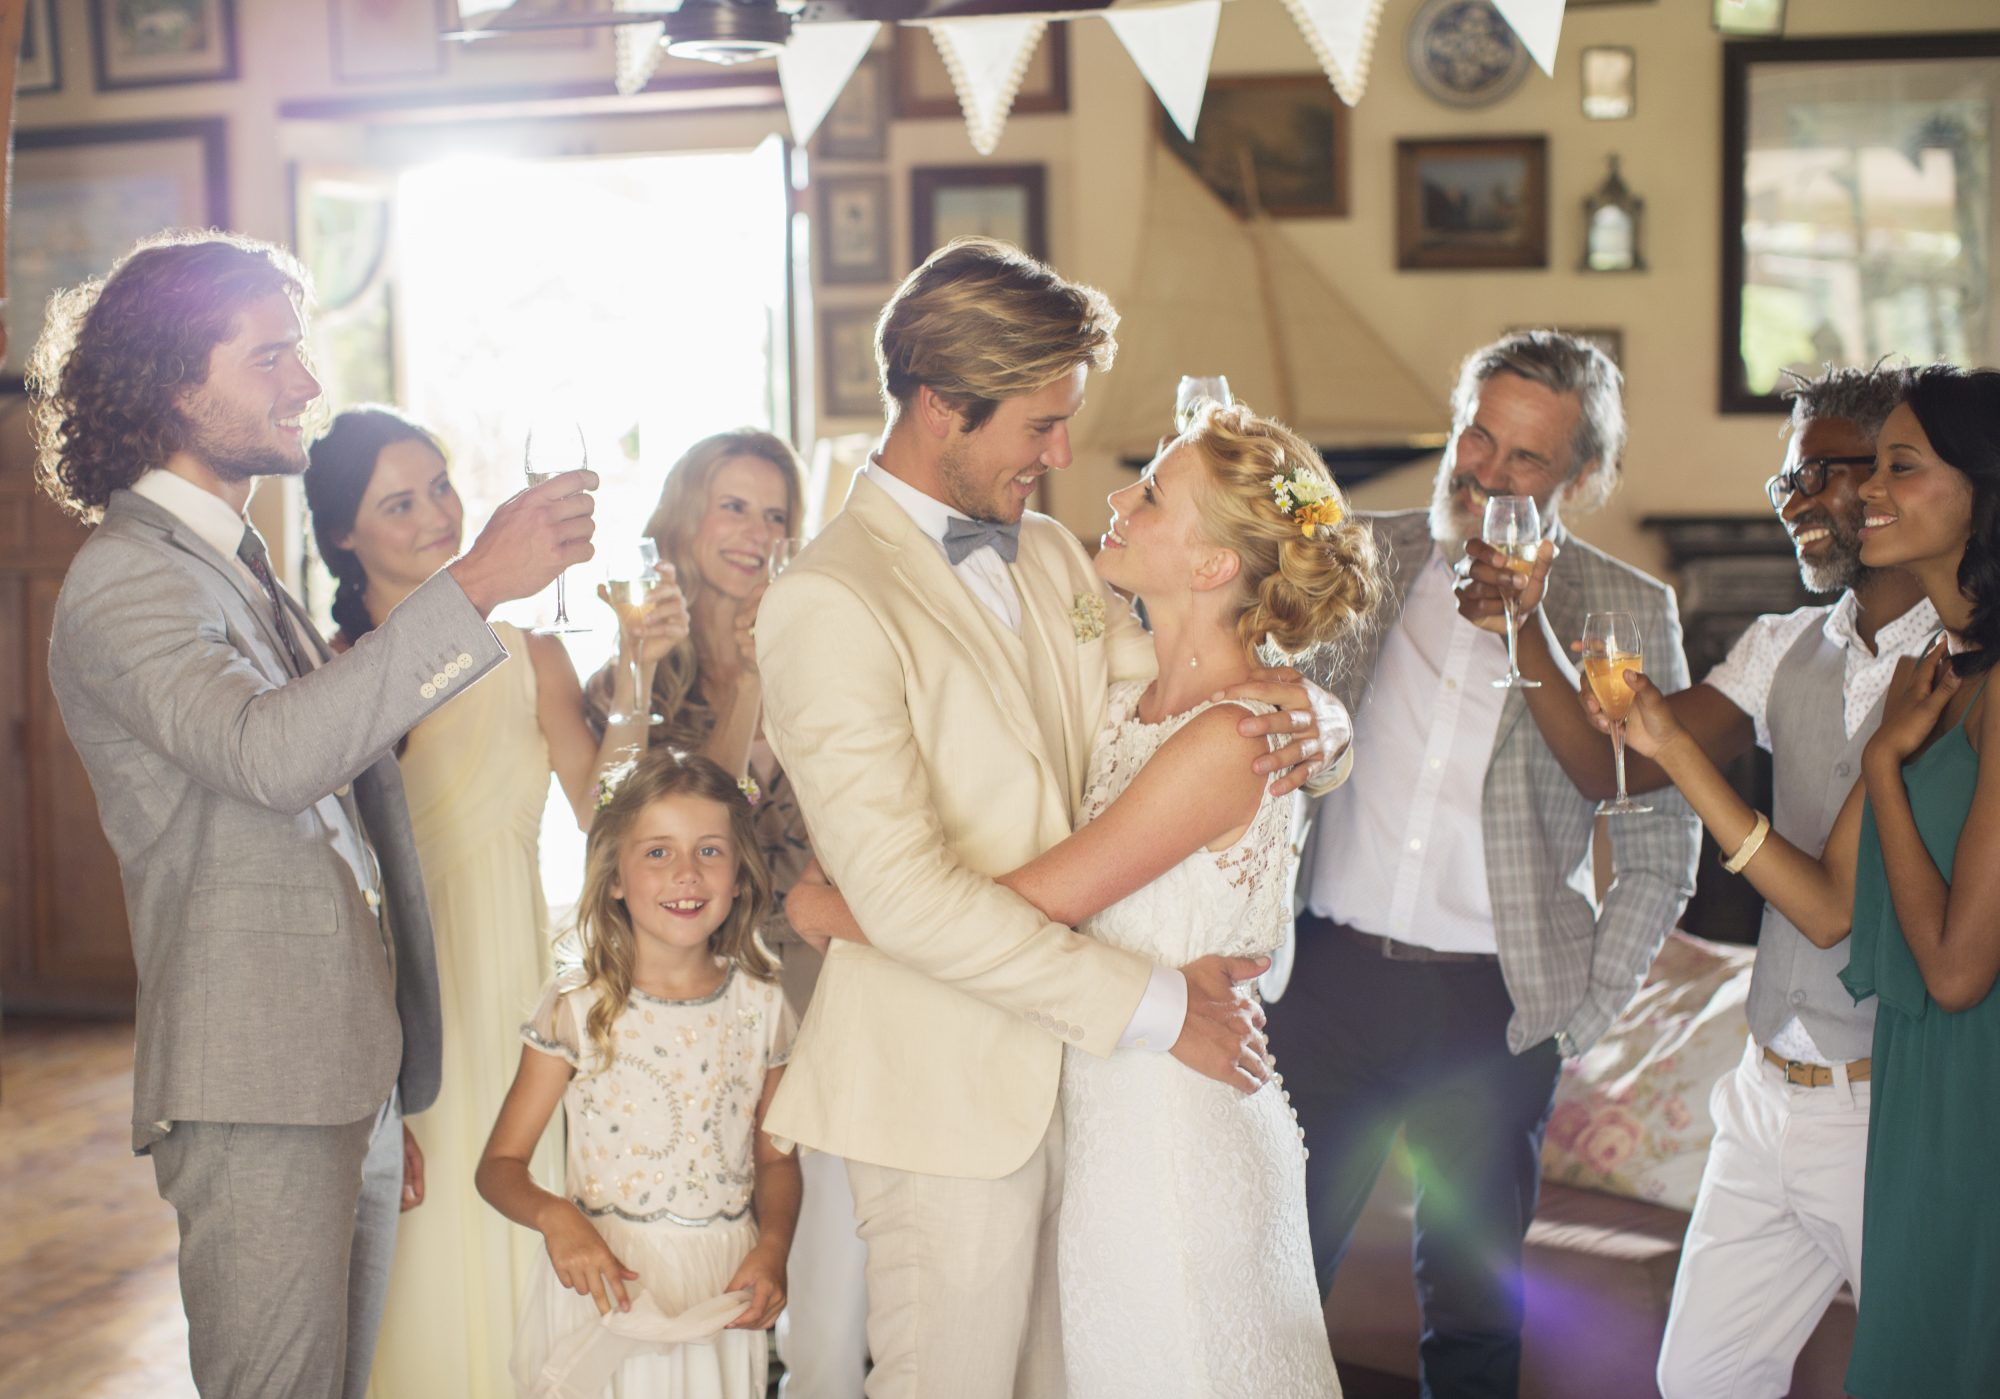 Wedding Gift Not Attending: 5 Etiquette Rules You Should Know About Attending A